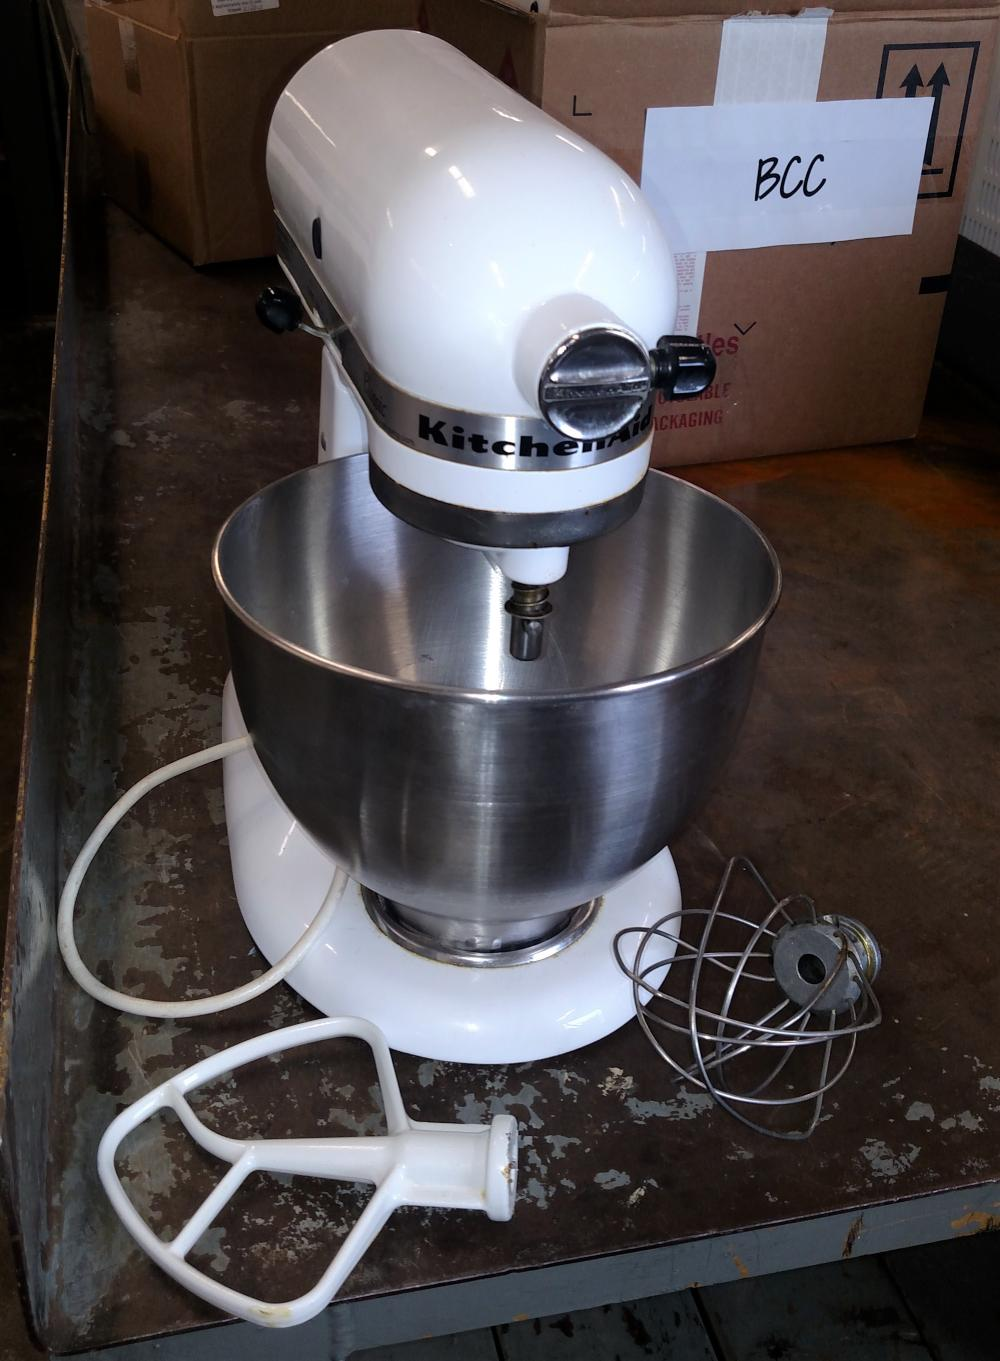 kitchen aid classic mixer